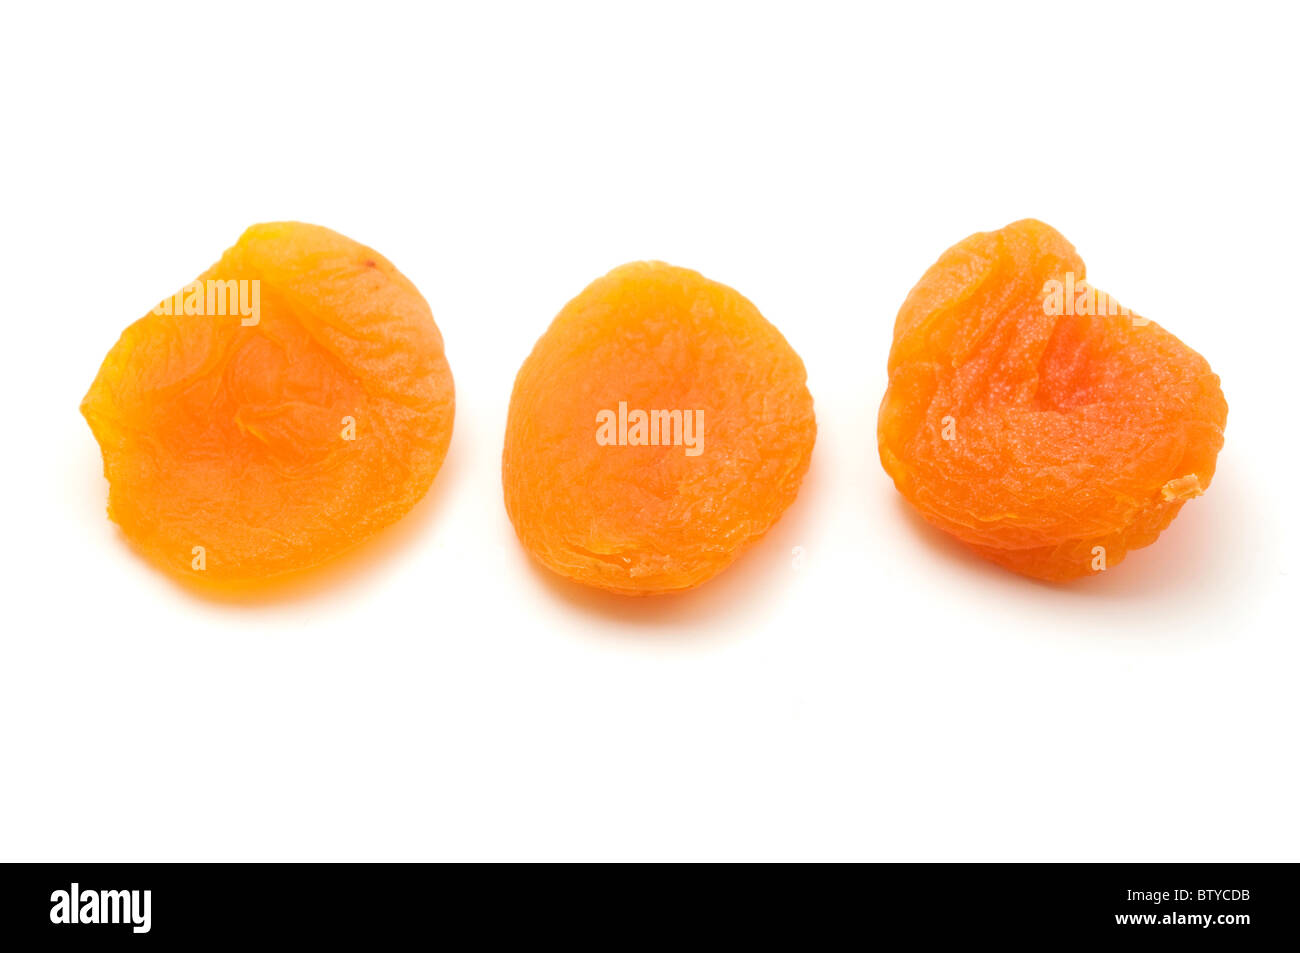 Dried apricots on a white background - Stock Image